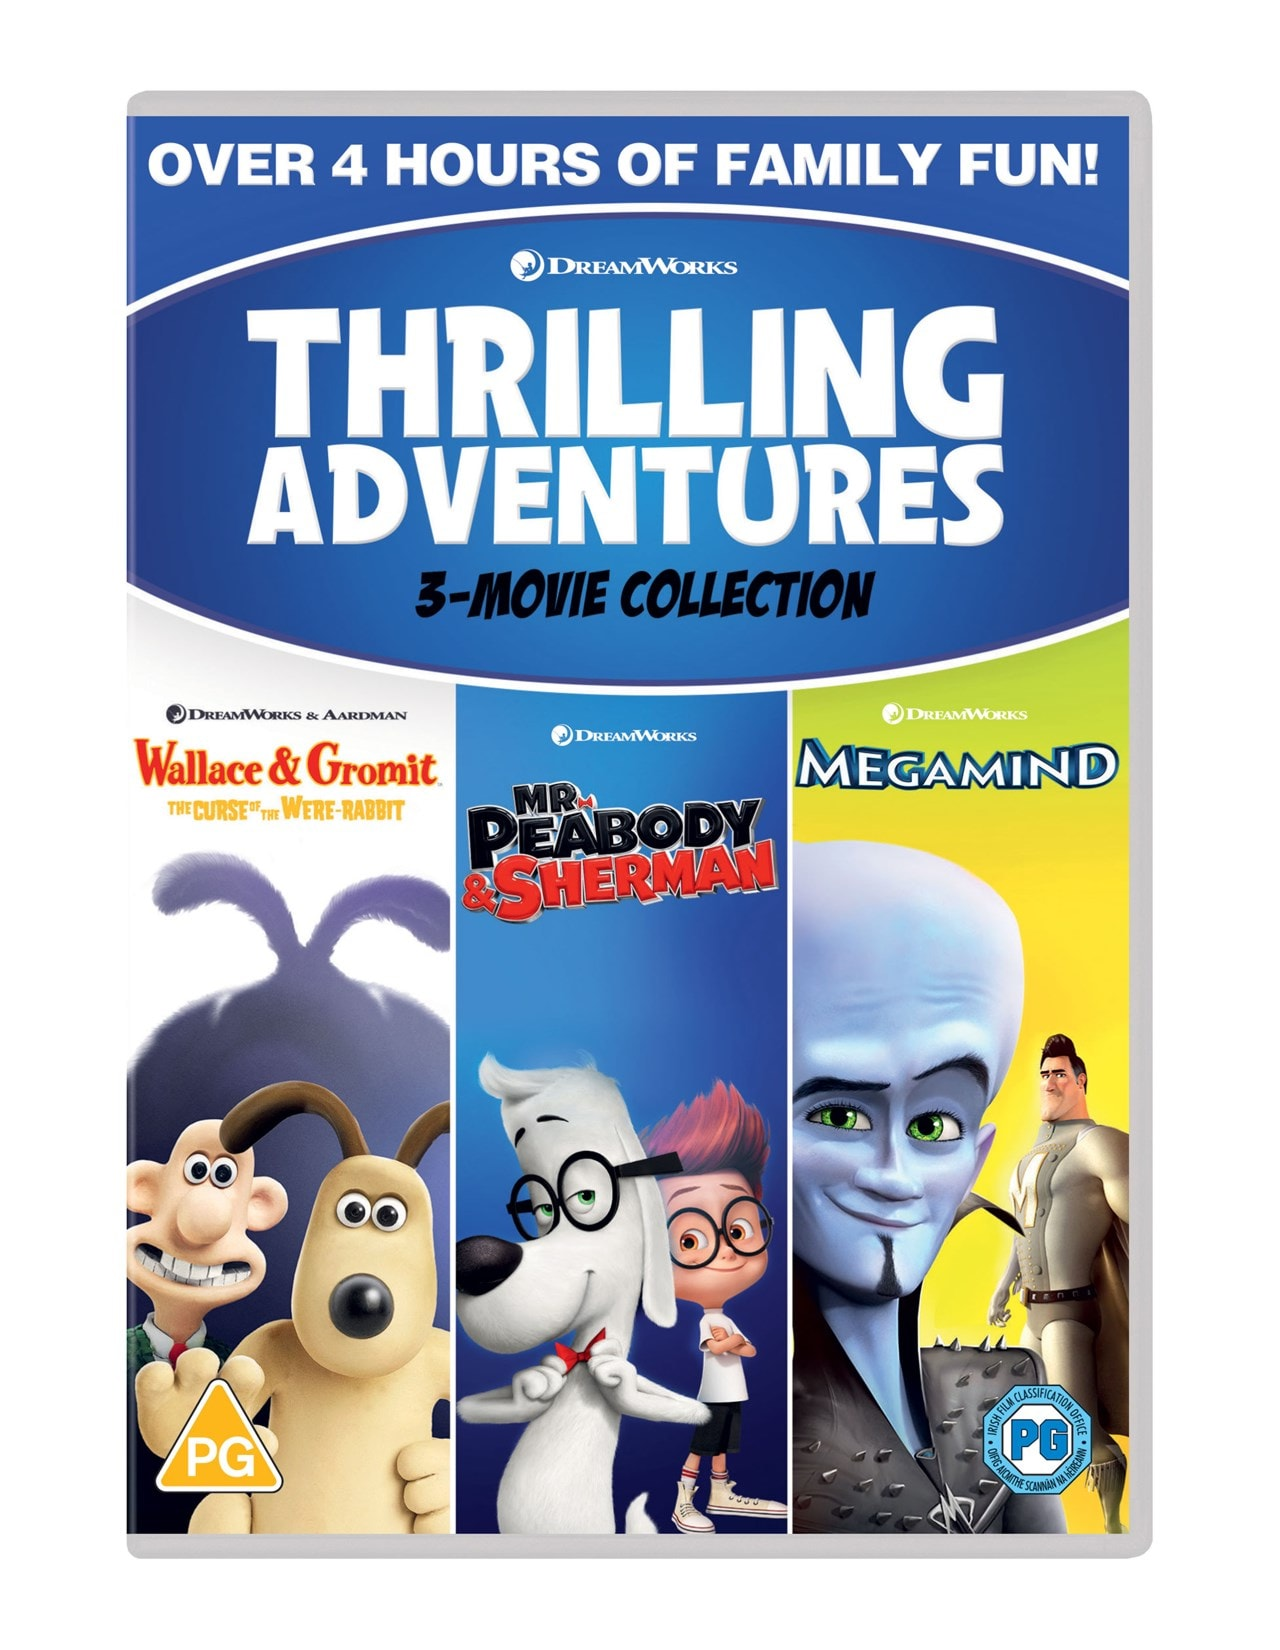 Thrilling Adventures: 3-movie Collection - 1